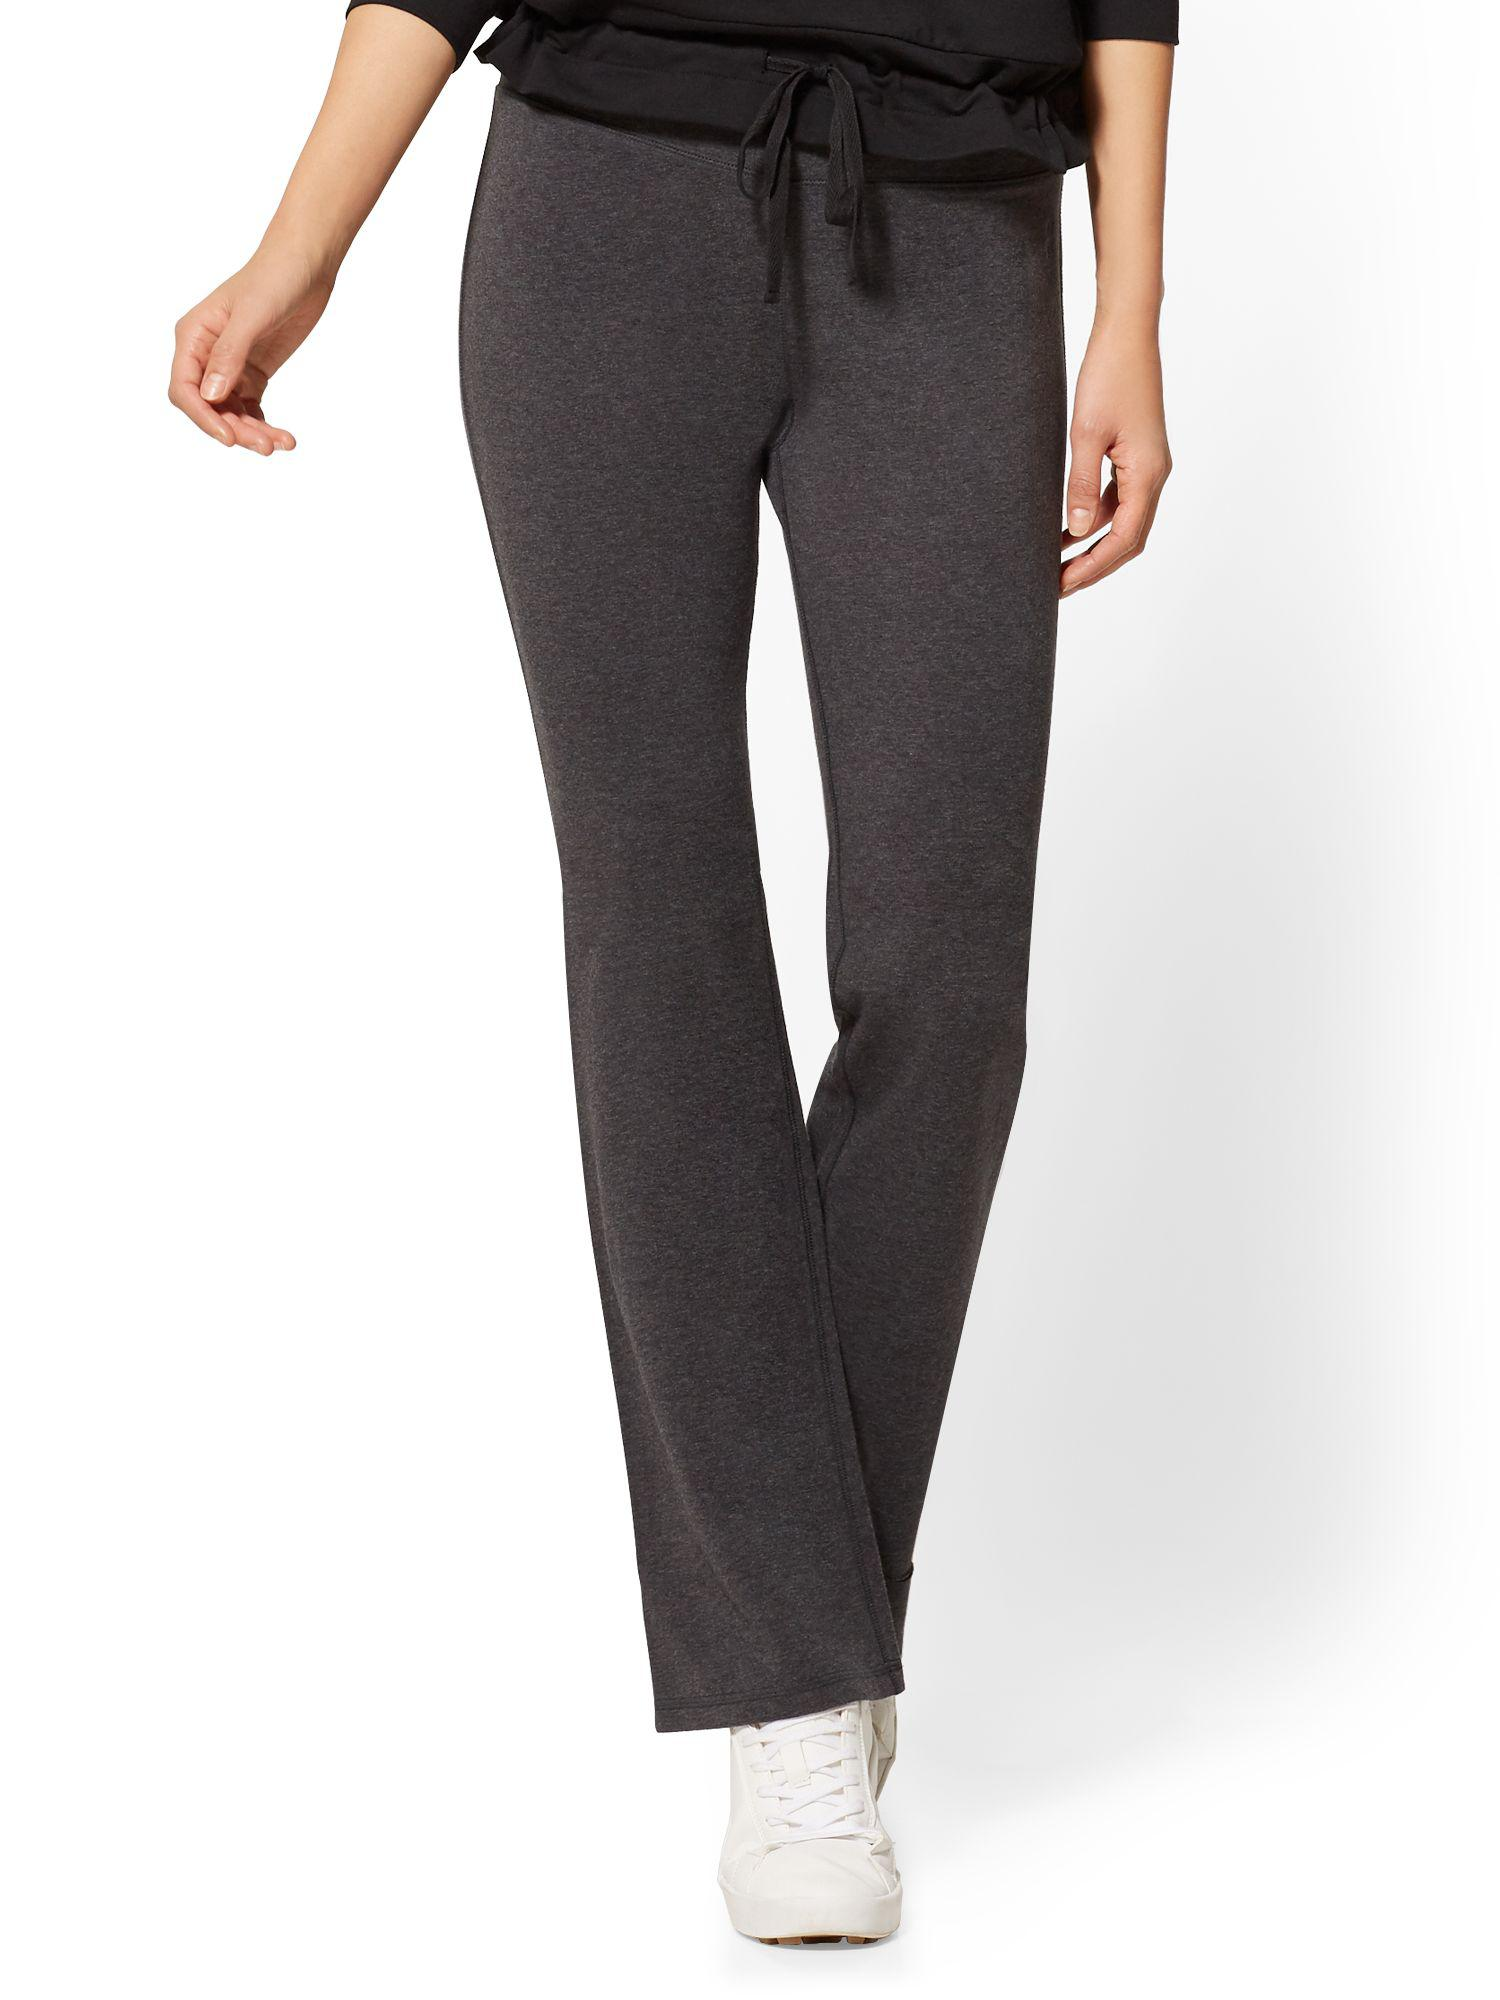 ff11981151 Lyst - New York & Company Petite Grey Bootcut Yoga Pant in Gray